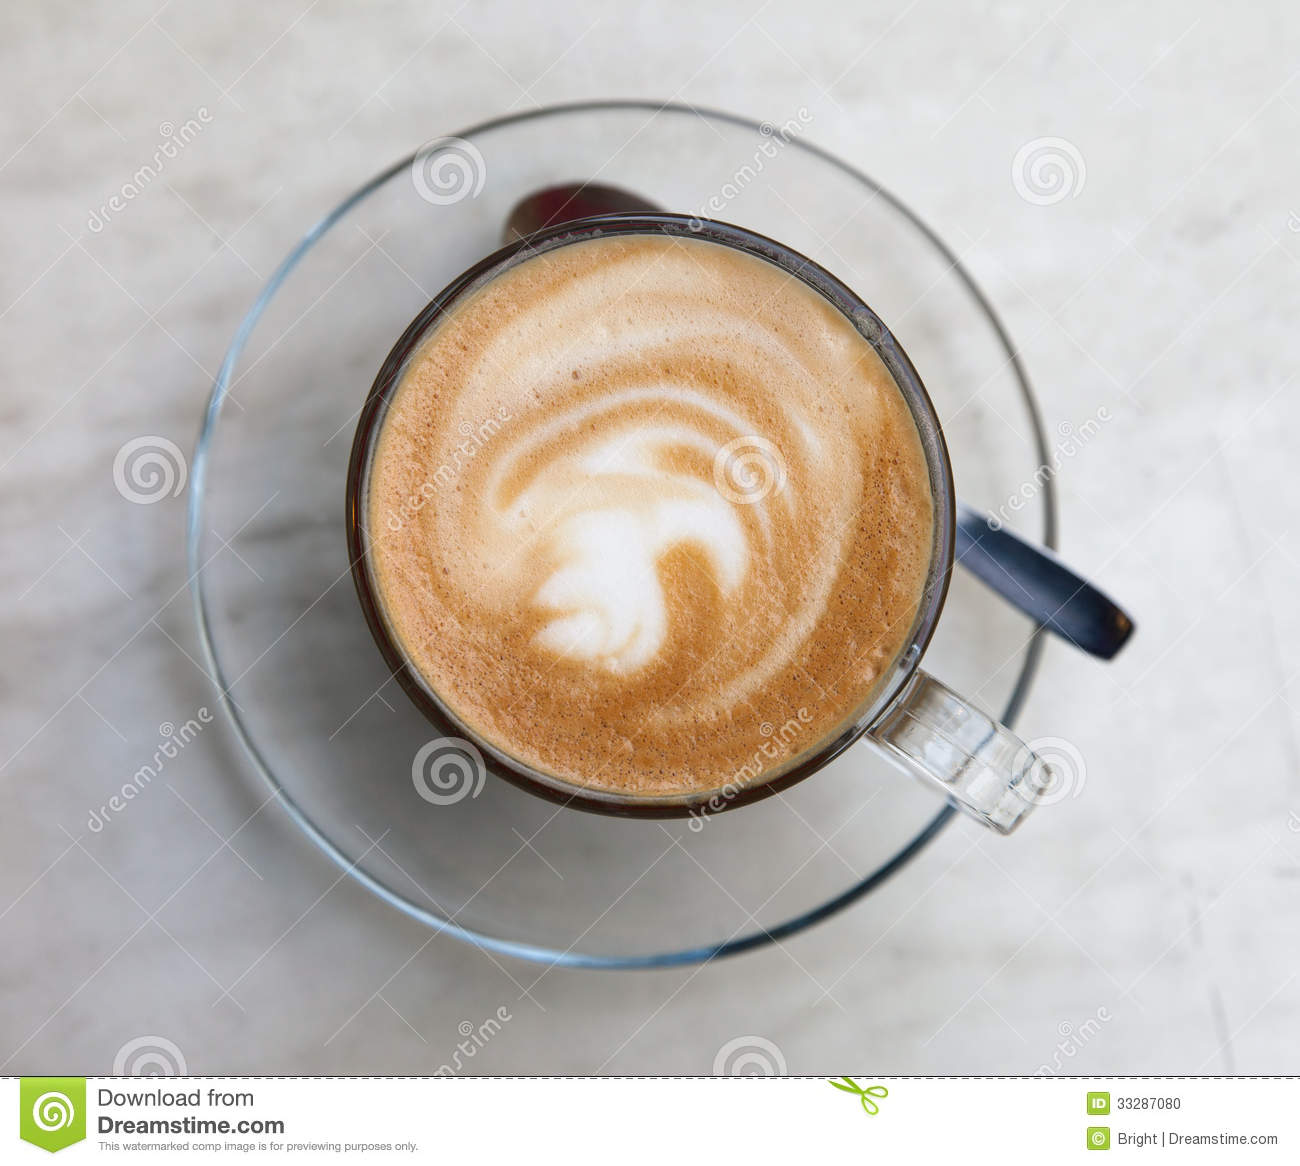 how to properly drink a cappuccino